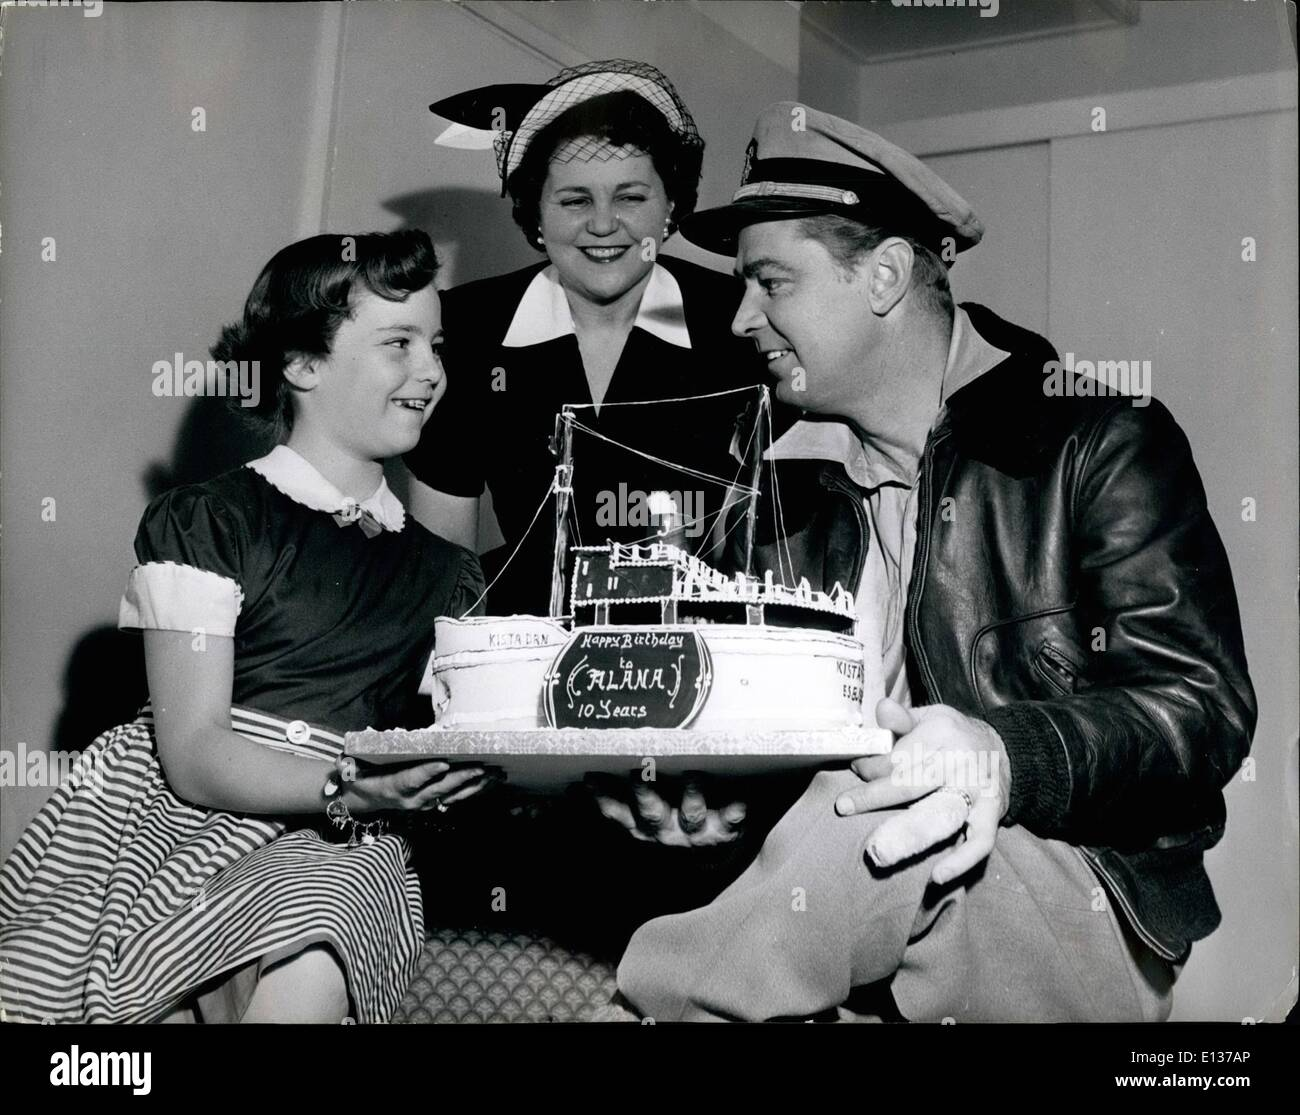 Feb. 29, 2012 - An 'Iced-breaker cake' Alana Ladd's birthday cake was model of the iceship ''Kista dan'': 'Sharing' her birthday with H.M. the Queen, was Alan Ladd's daughter Alana. To celebrate her 10th brithday, cooks at Pinewood,, where Alan Ladd is shooting interior scenes of ''Hell Below Zero'', prepared for her a wonderful iced birthday cake modelled on the ice-breaker 'Kista Dan, in which the Warwick Film Production Unit spent 2 months in the Antarctic on location. Mrs - Stock Image